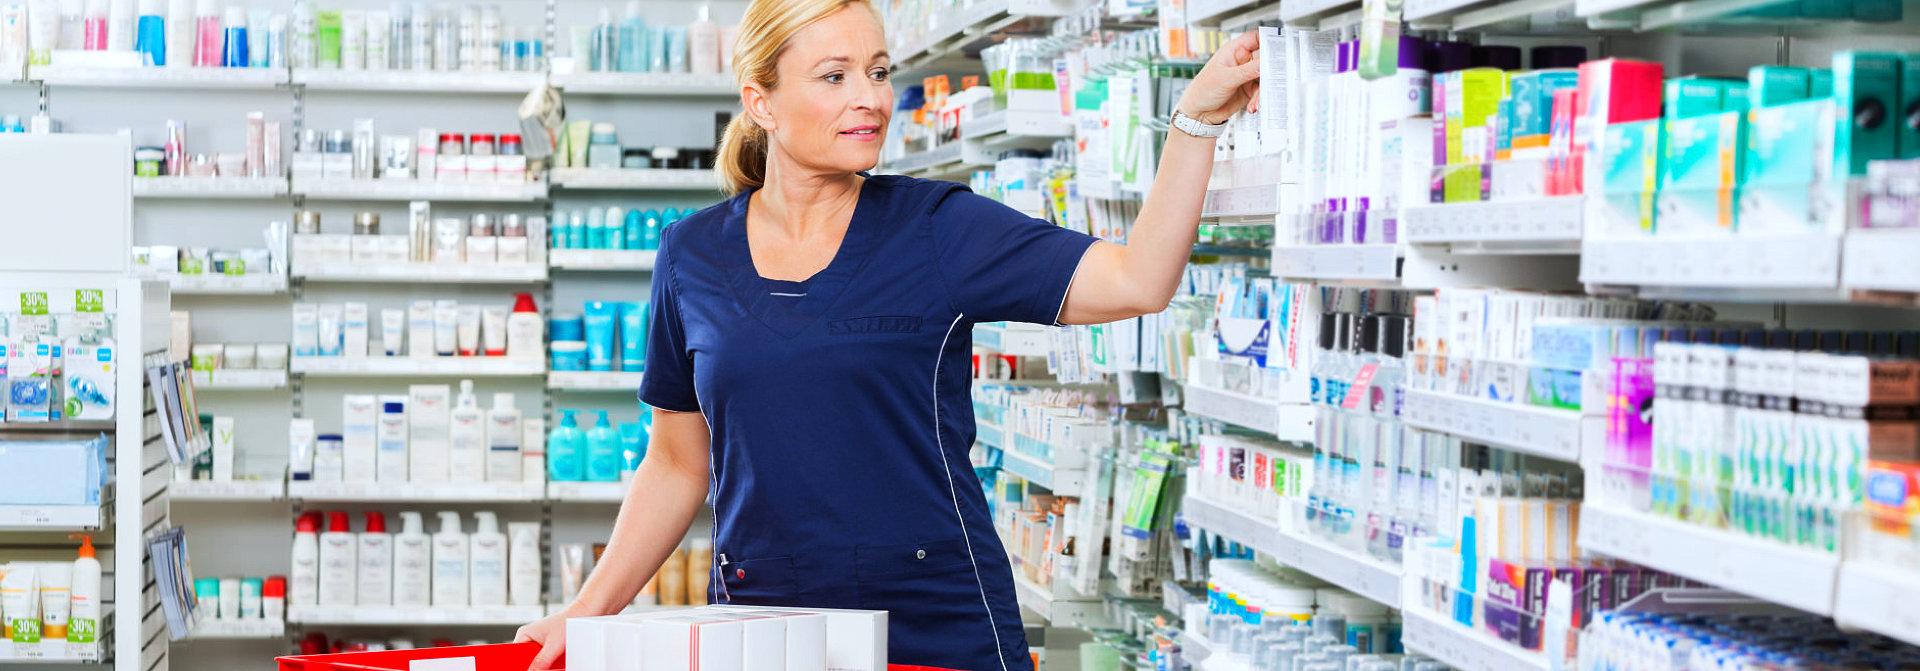 pharmacist sorting products